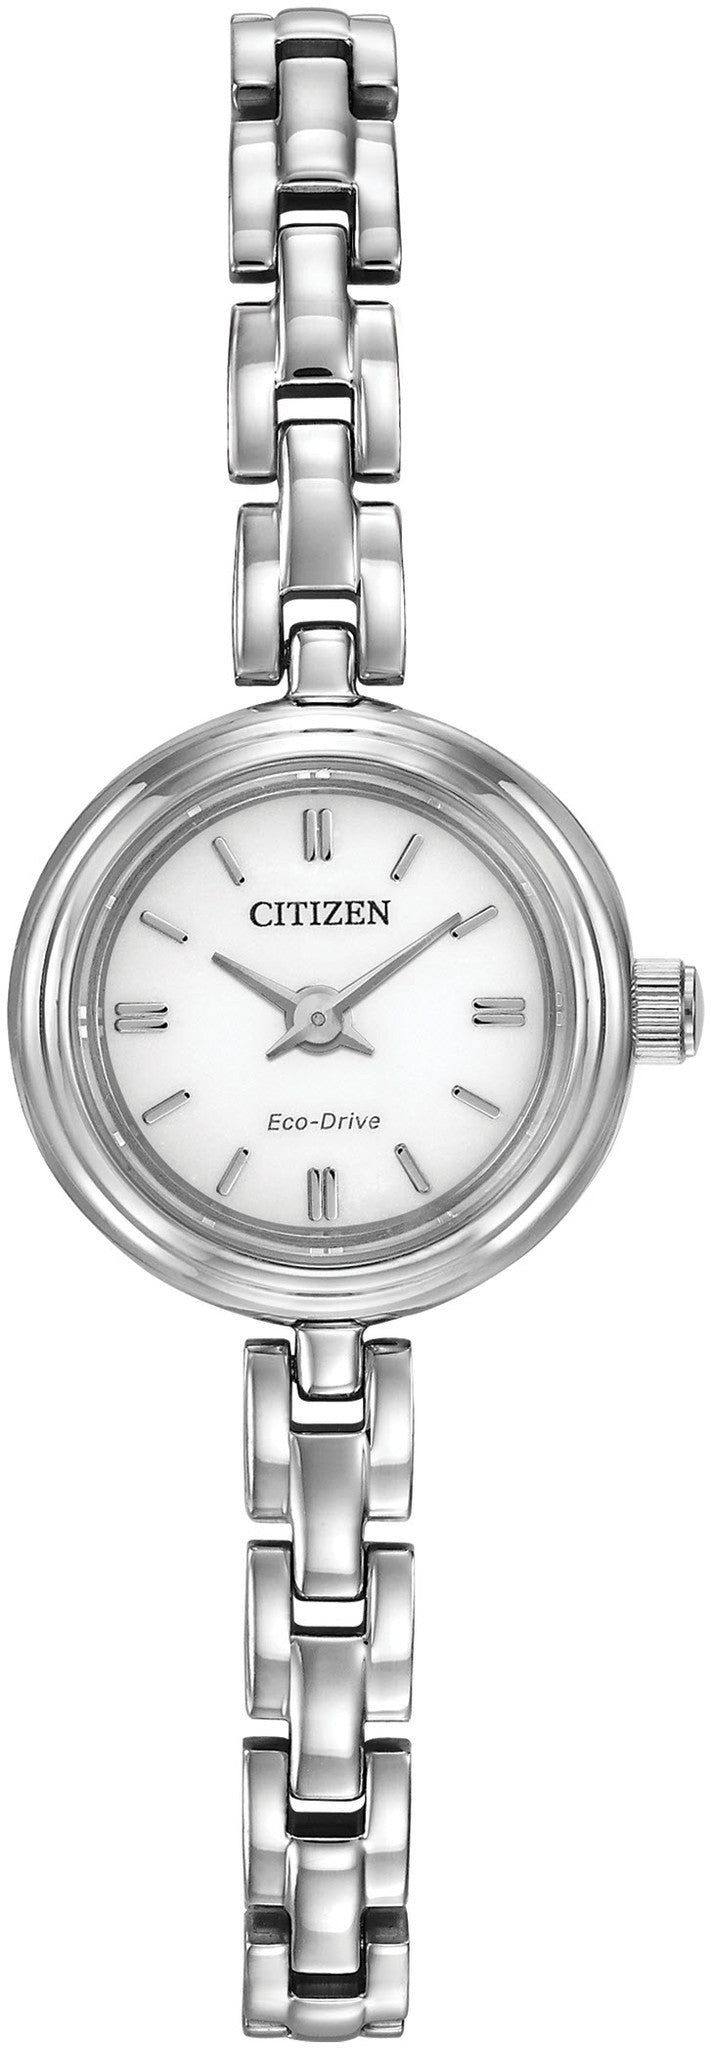 Citizen Watch Eco Drive Ladies Silhouette